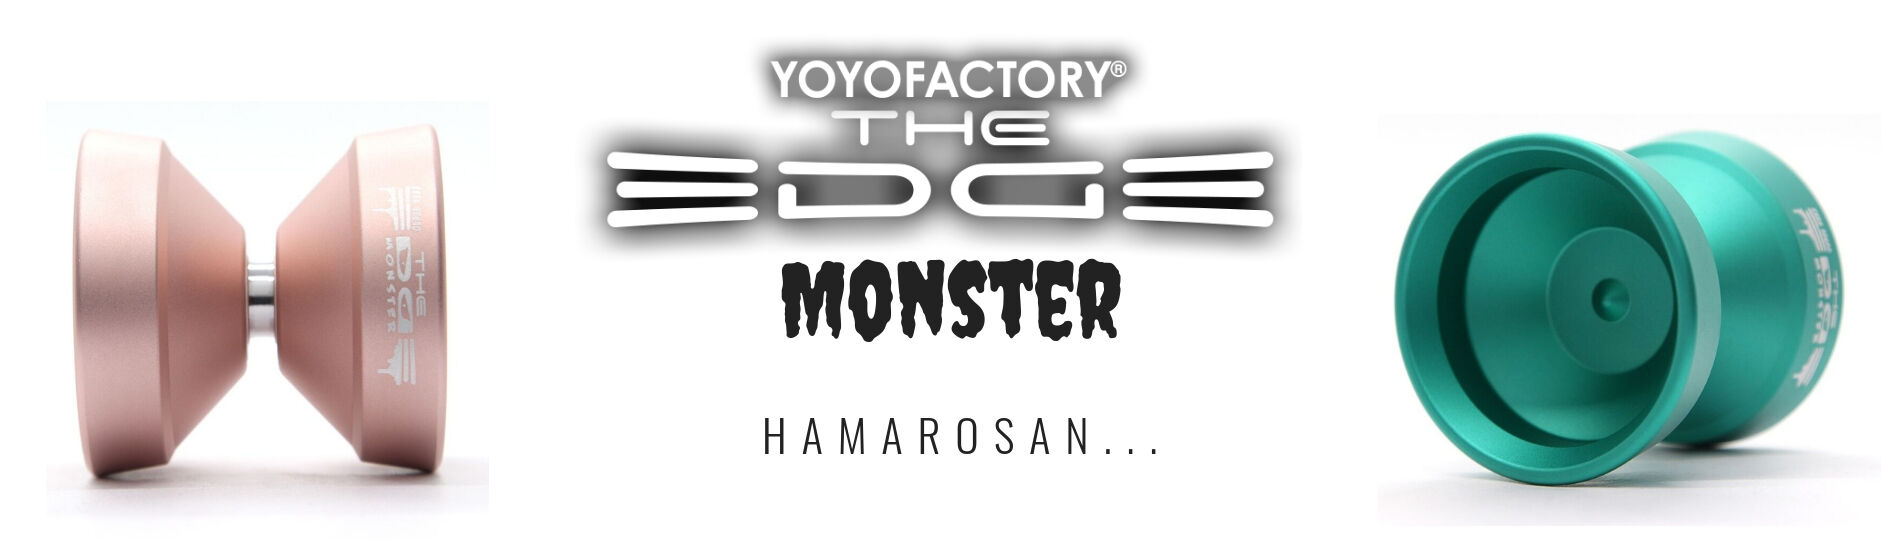 edge-monster-hamarosan